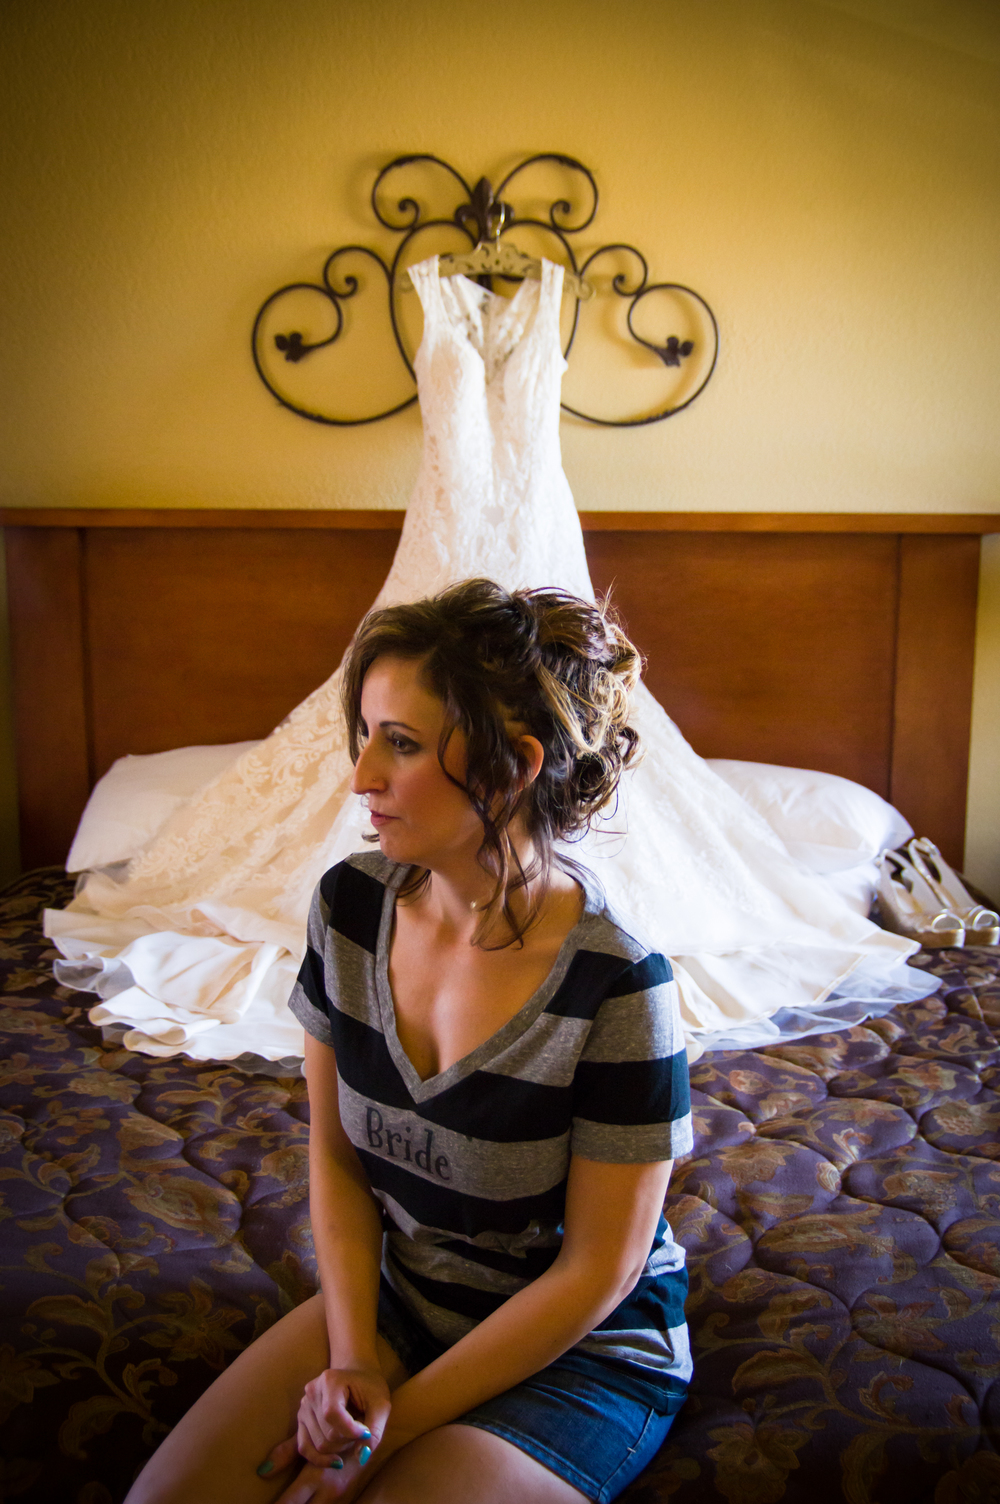 Nick_Cardona_Photography_Gilbert_AZ_wedding_Photographer_Blythe-4.jpg